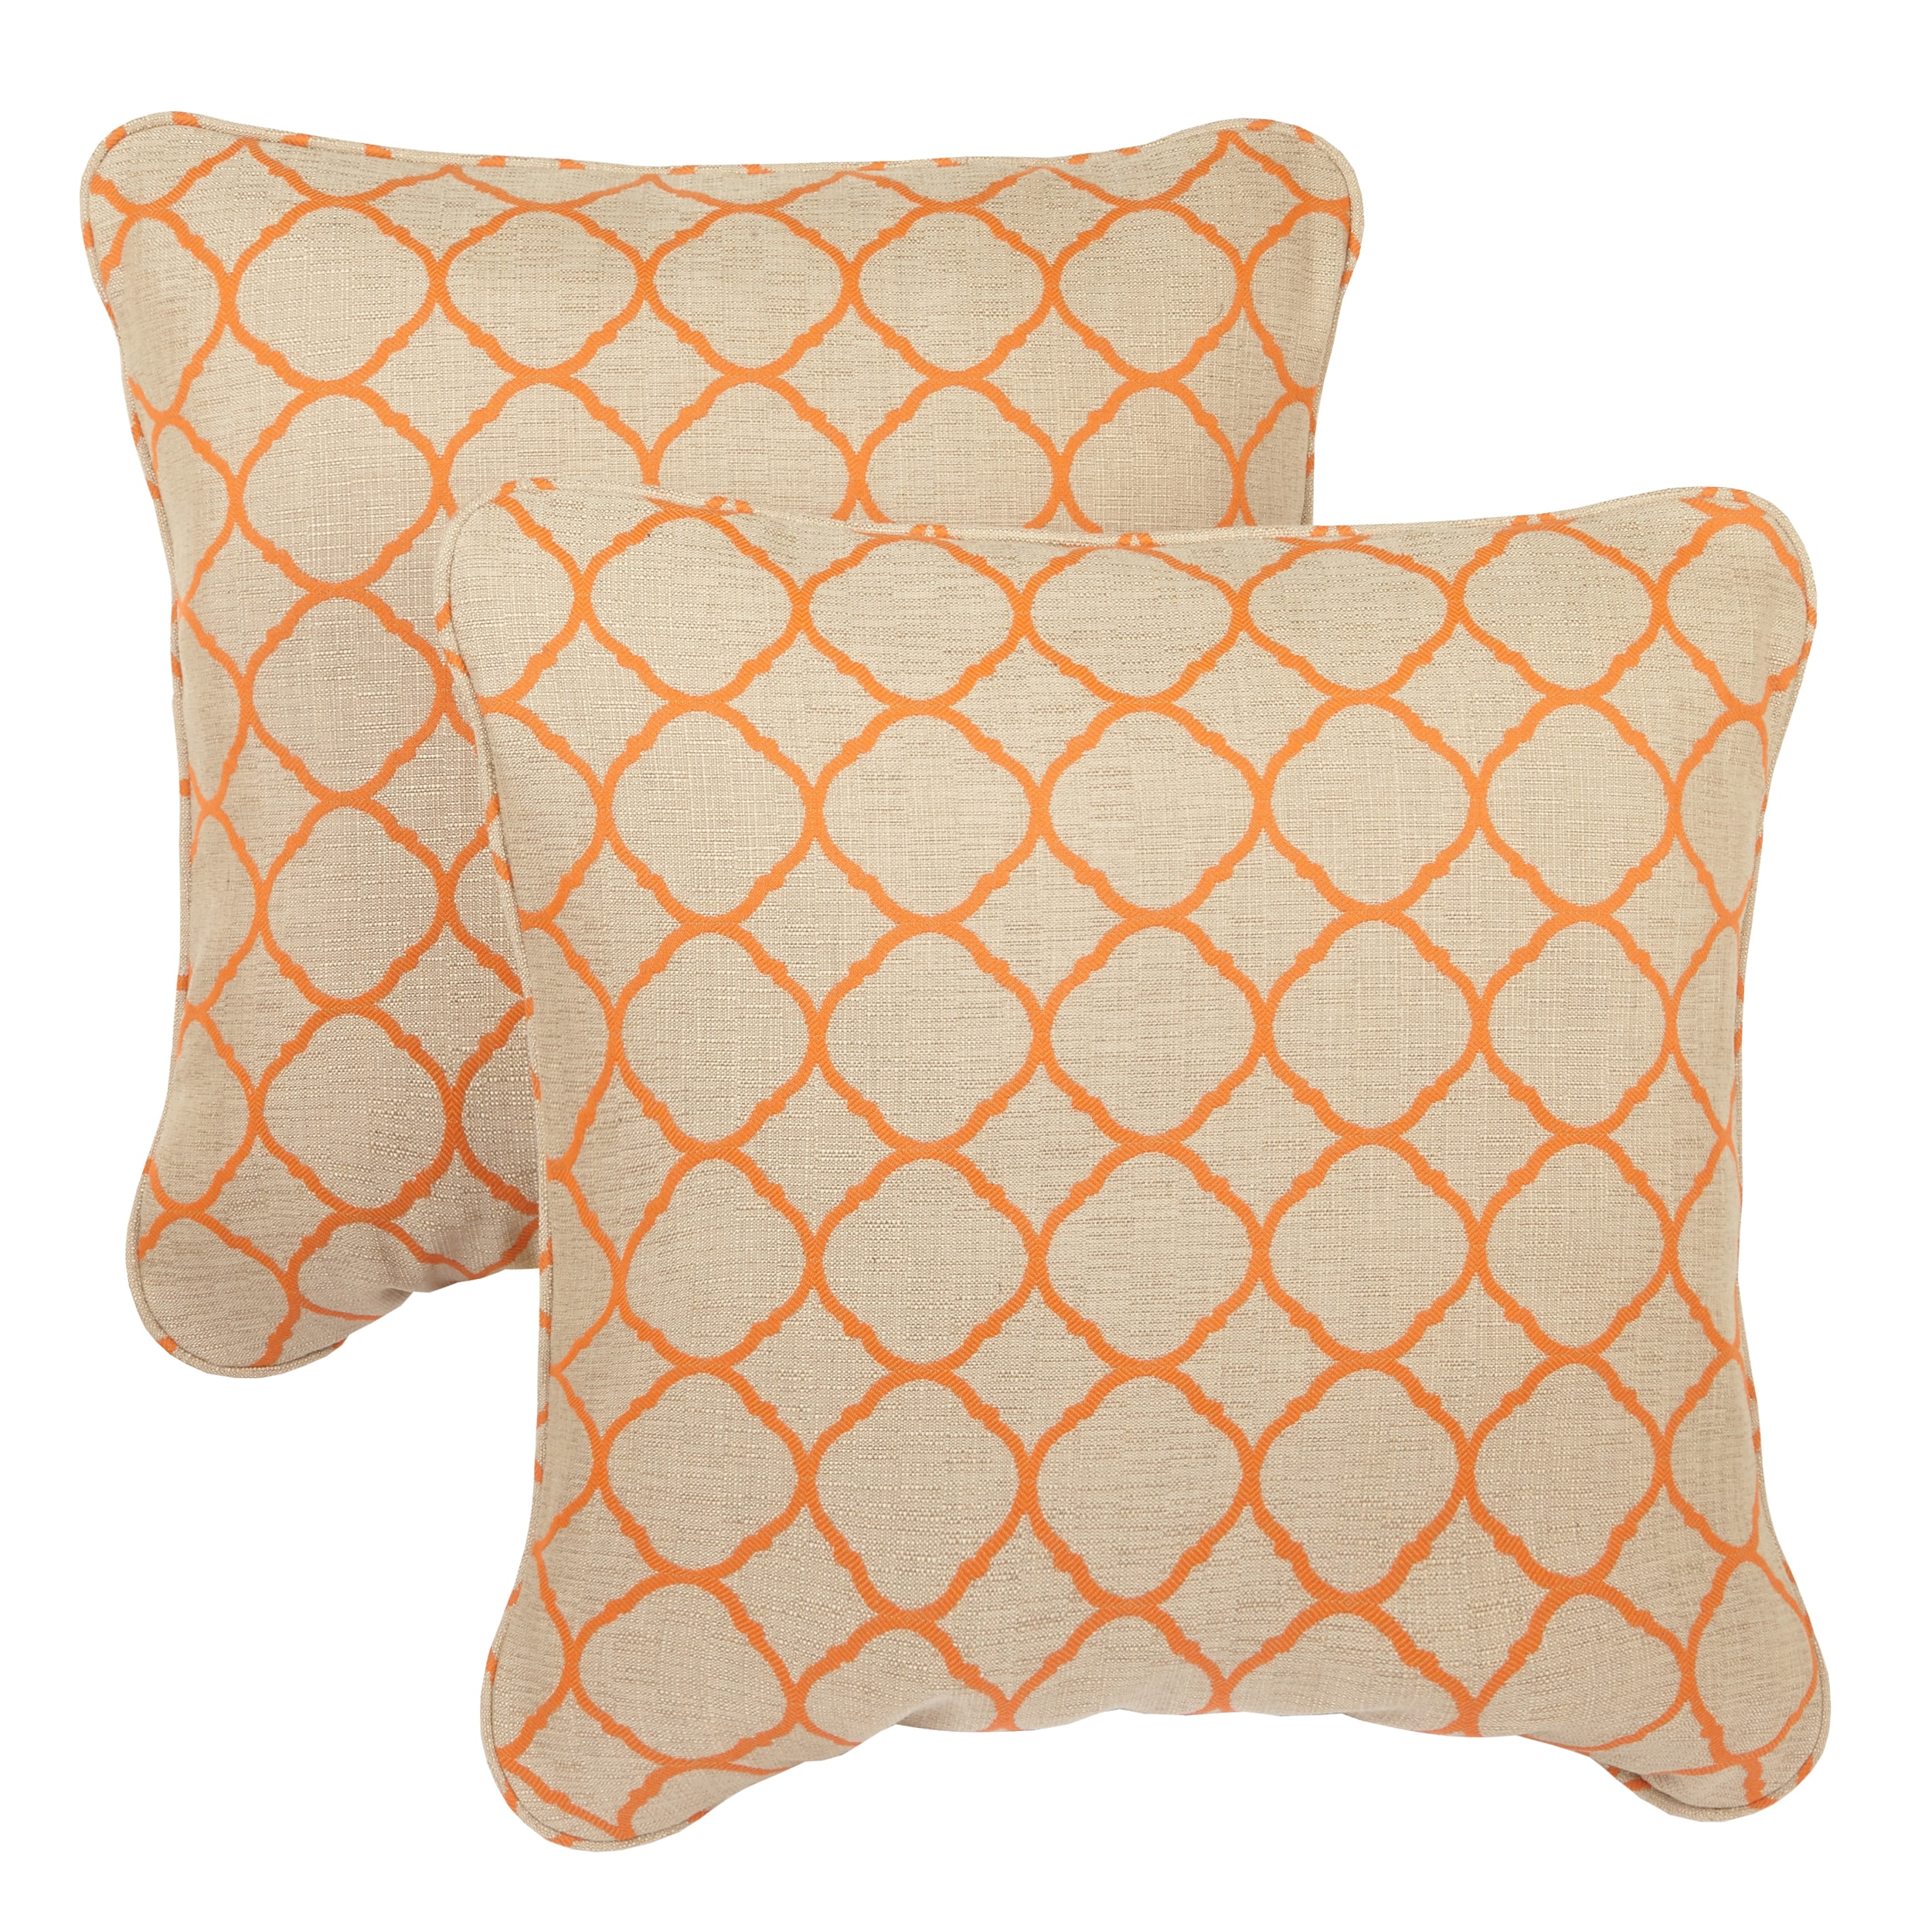 Moroccan Orange Indoor/ Outdoor Corded Square Throw Pillows with Sunbrella  Fabric Set of 20